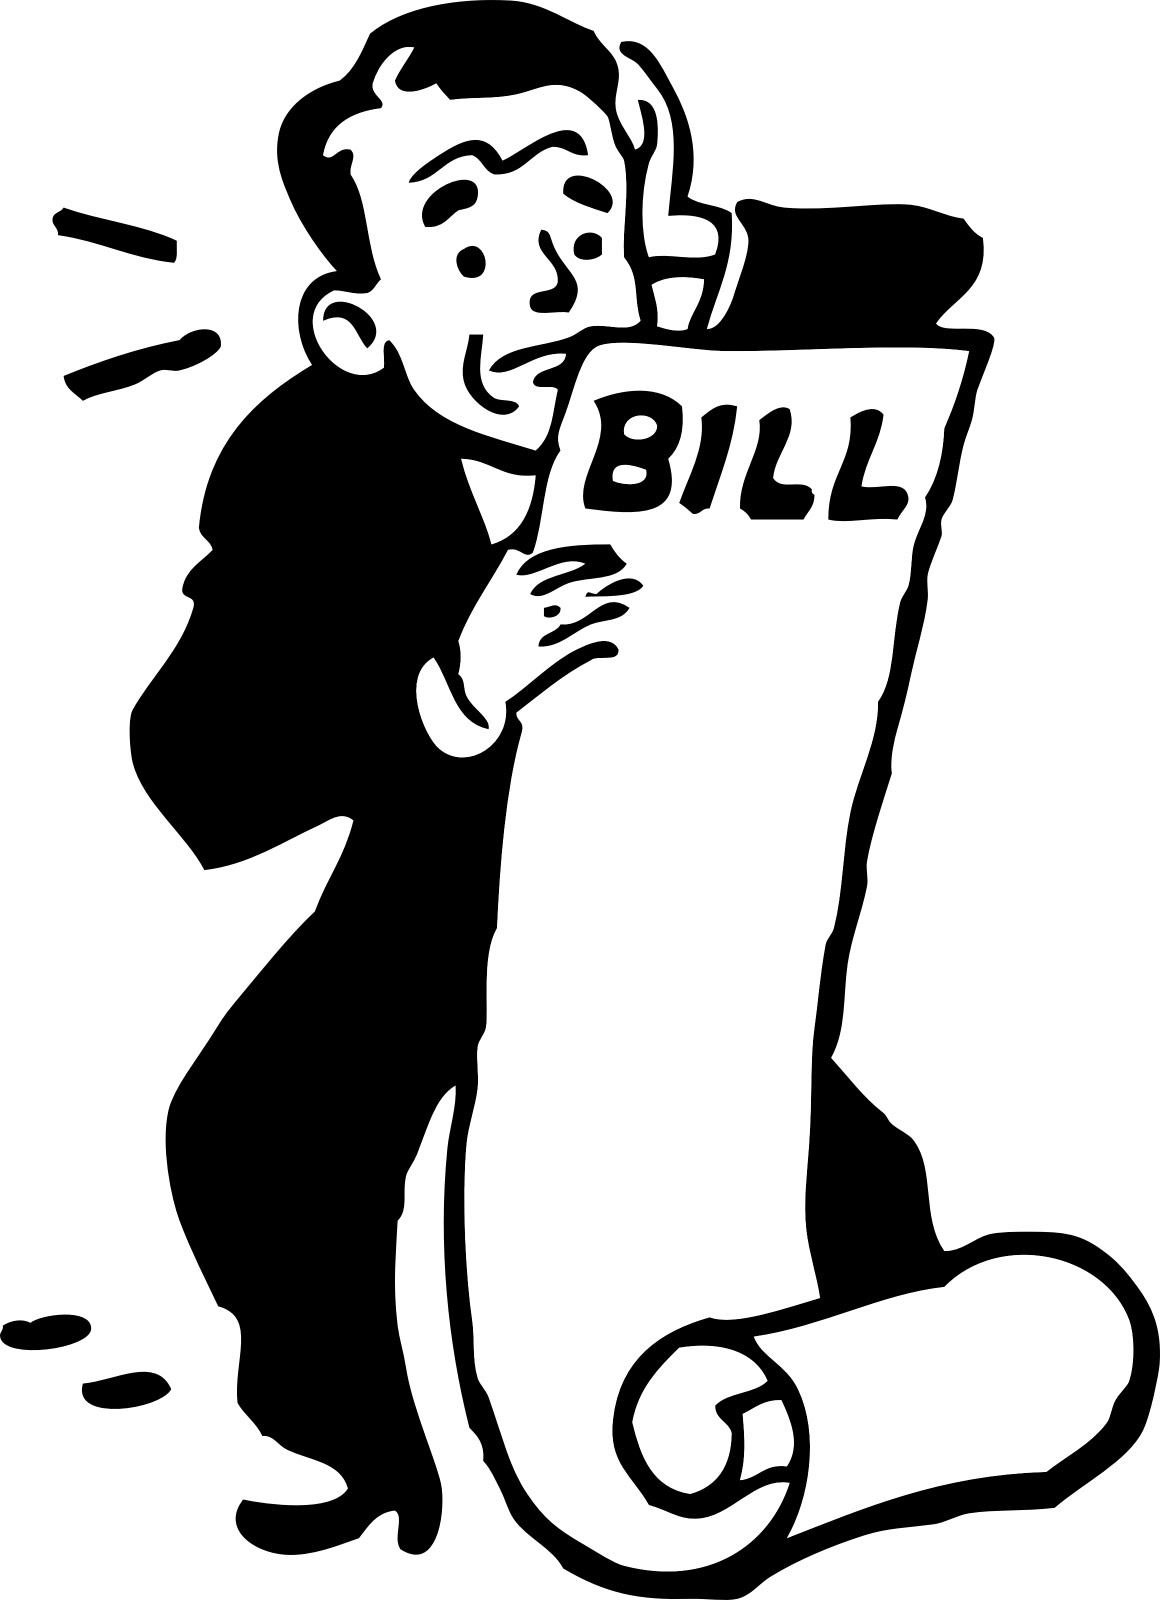 GALLERY: Electricity Bill Clip Art